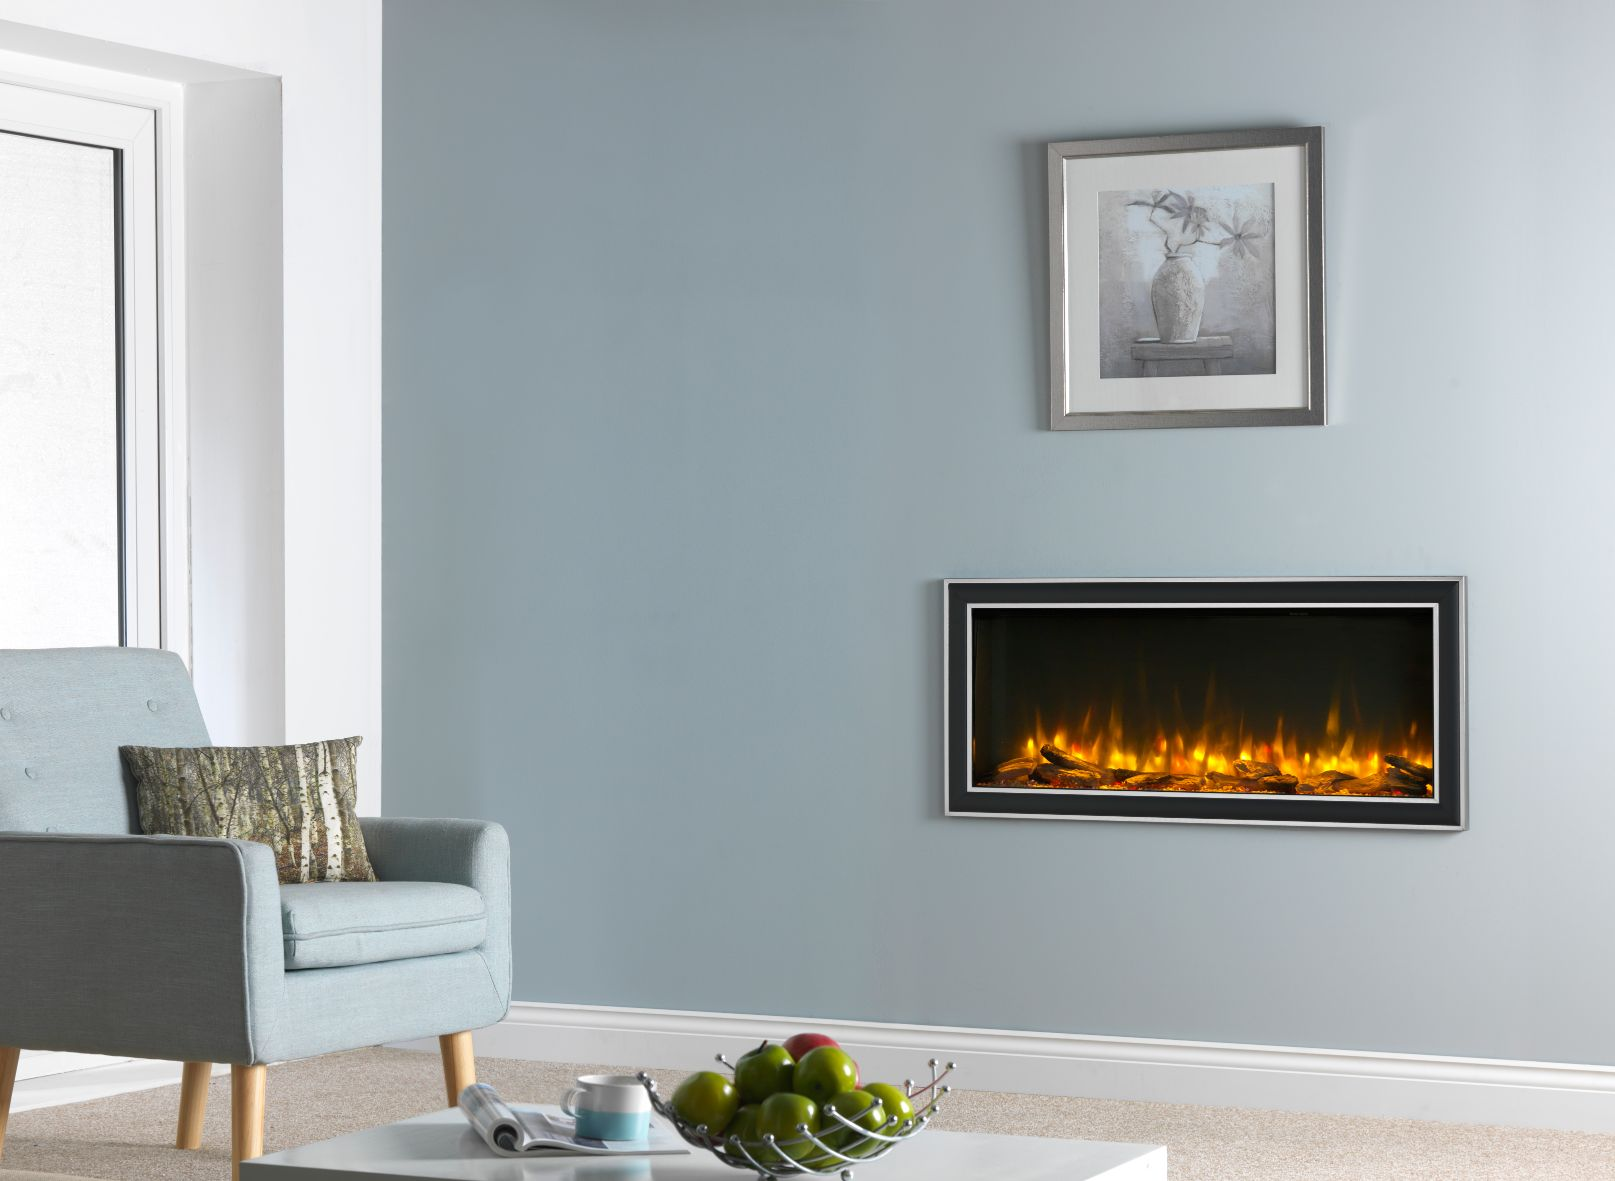 Infinity 890 Inset Hole in the Wall Electric Fire with Chrome Trim